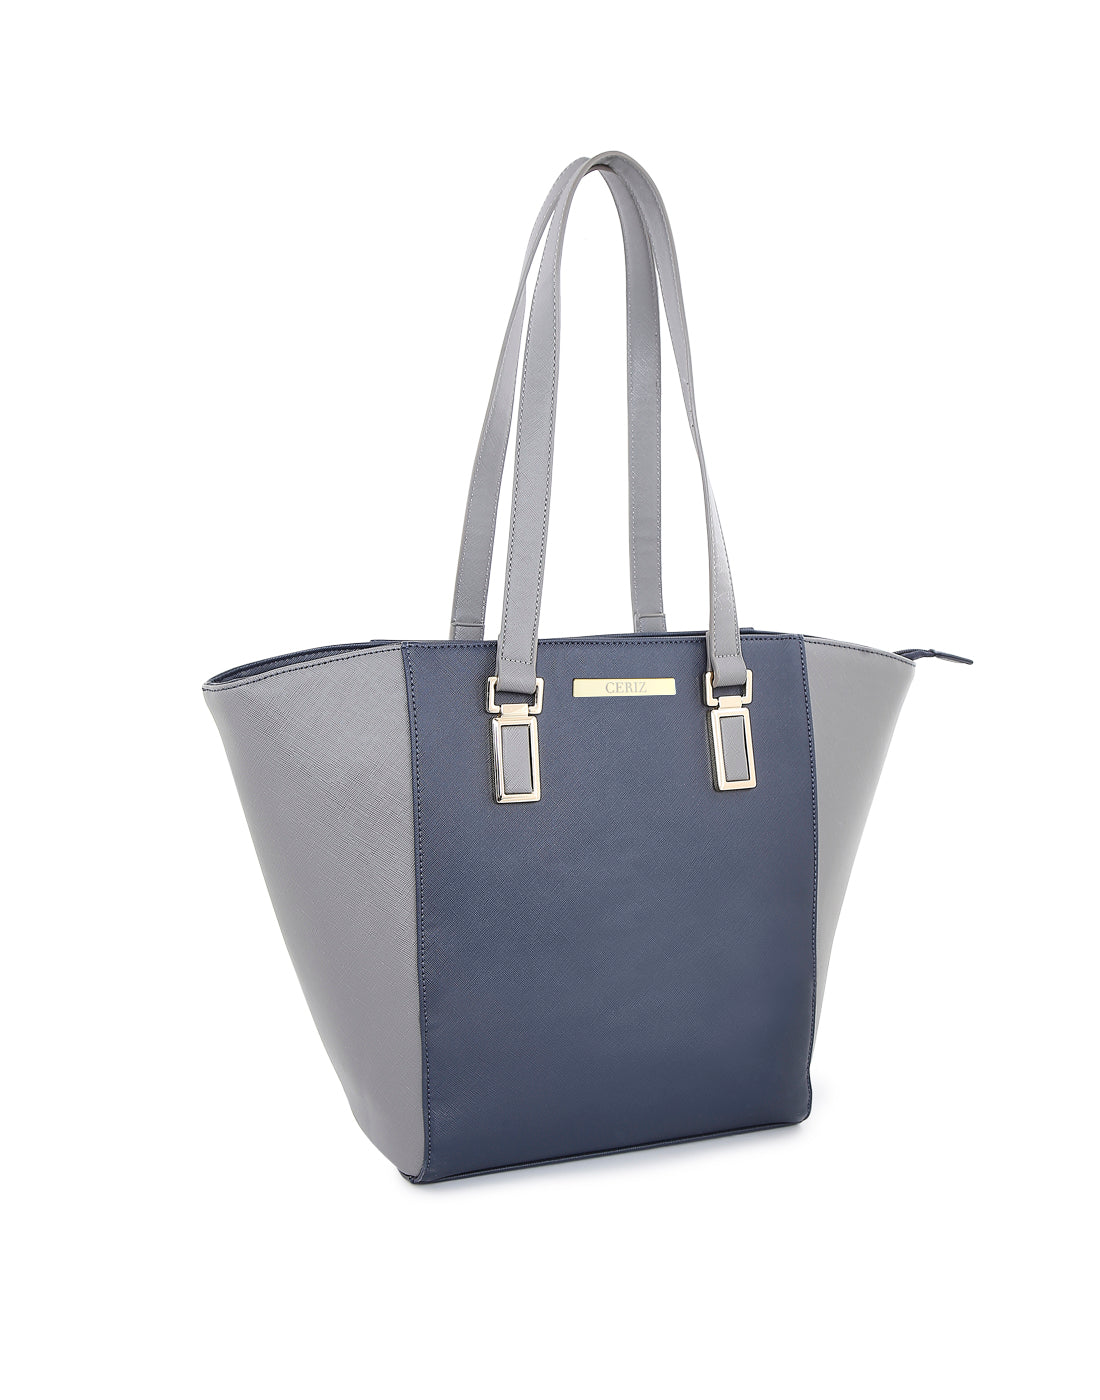 Aliena Navy Tote Bag